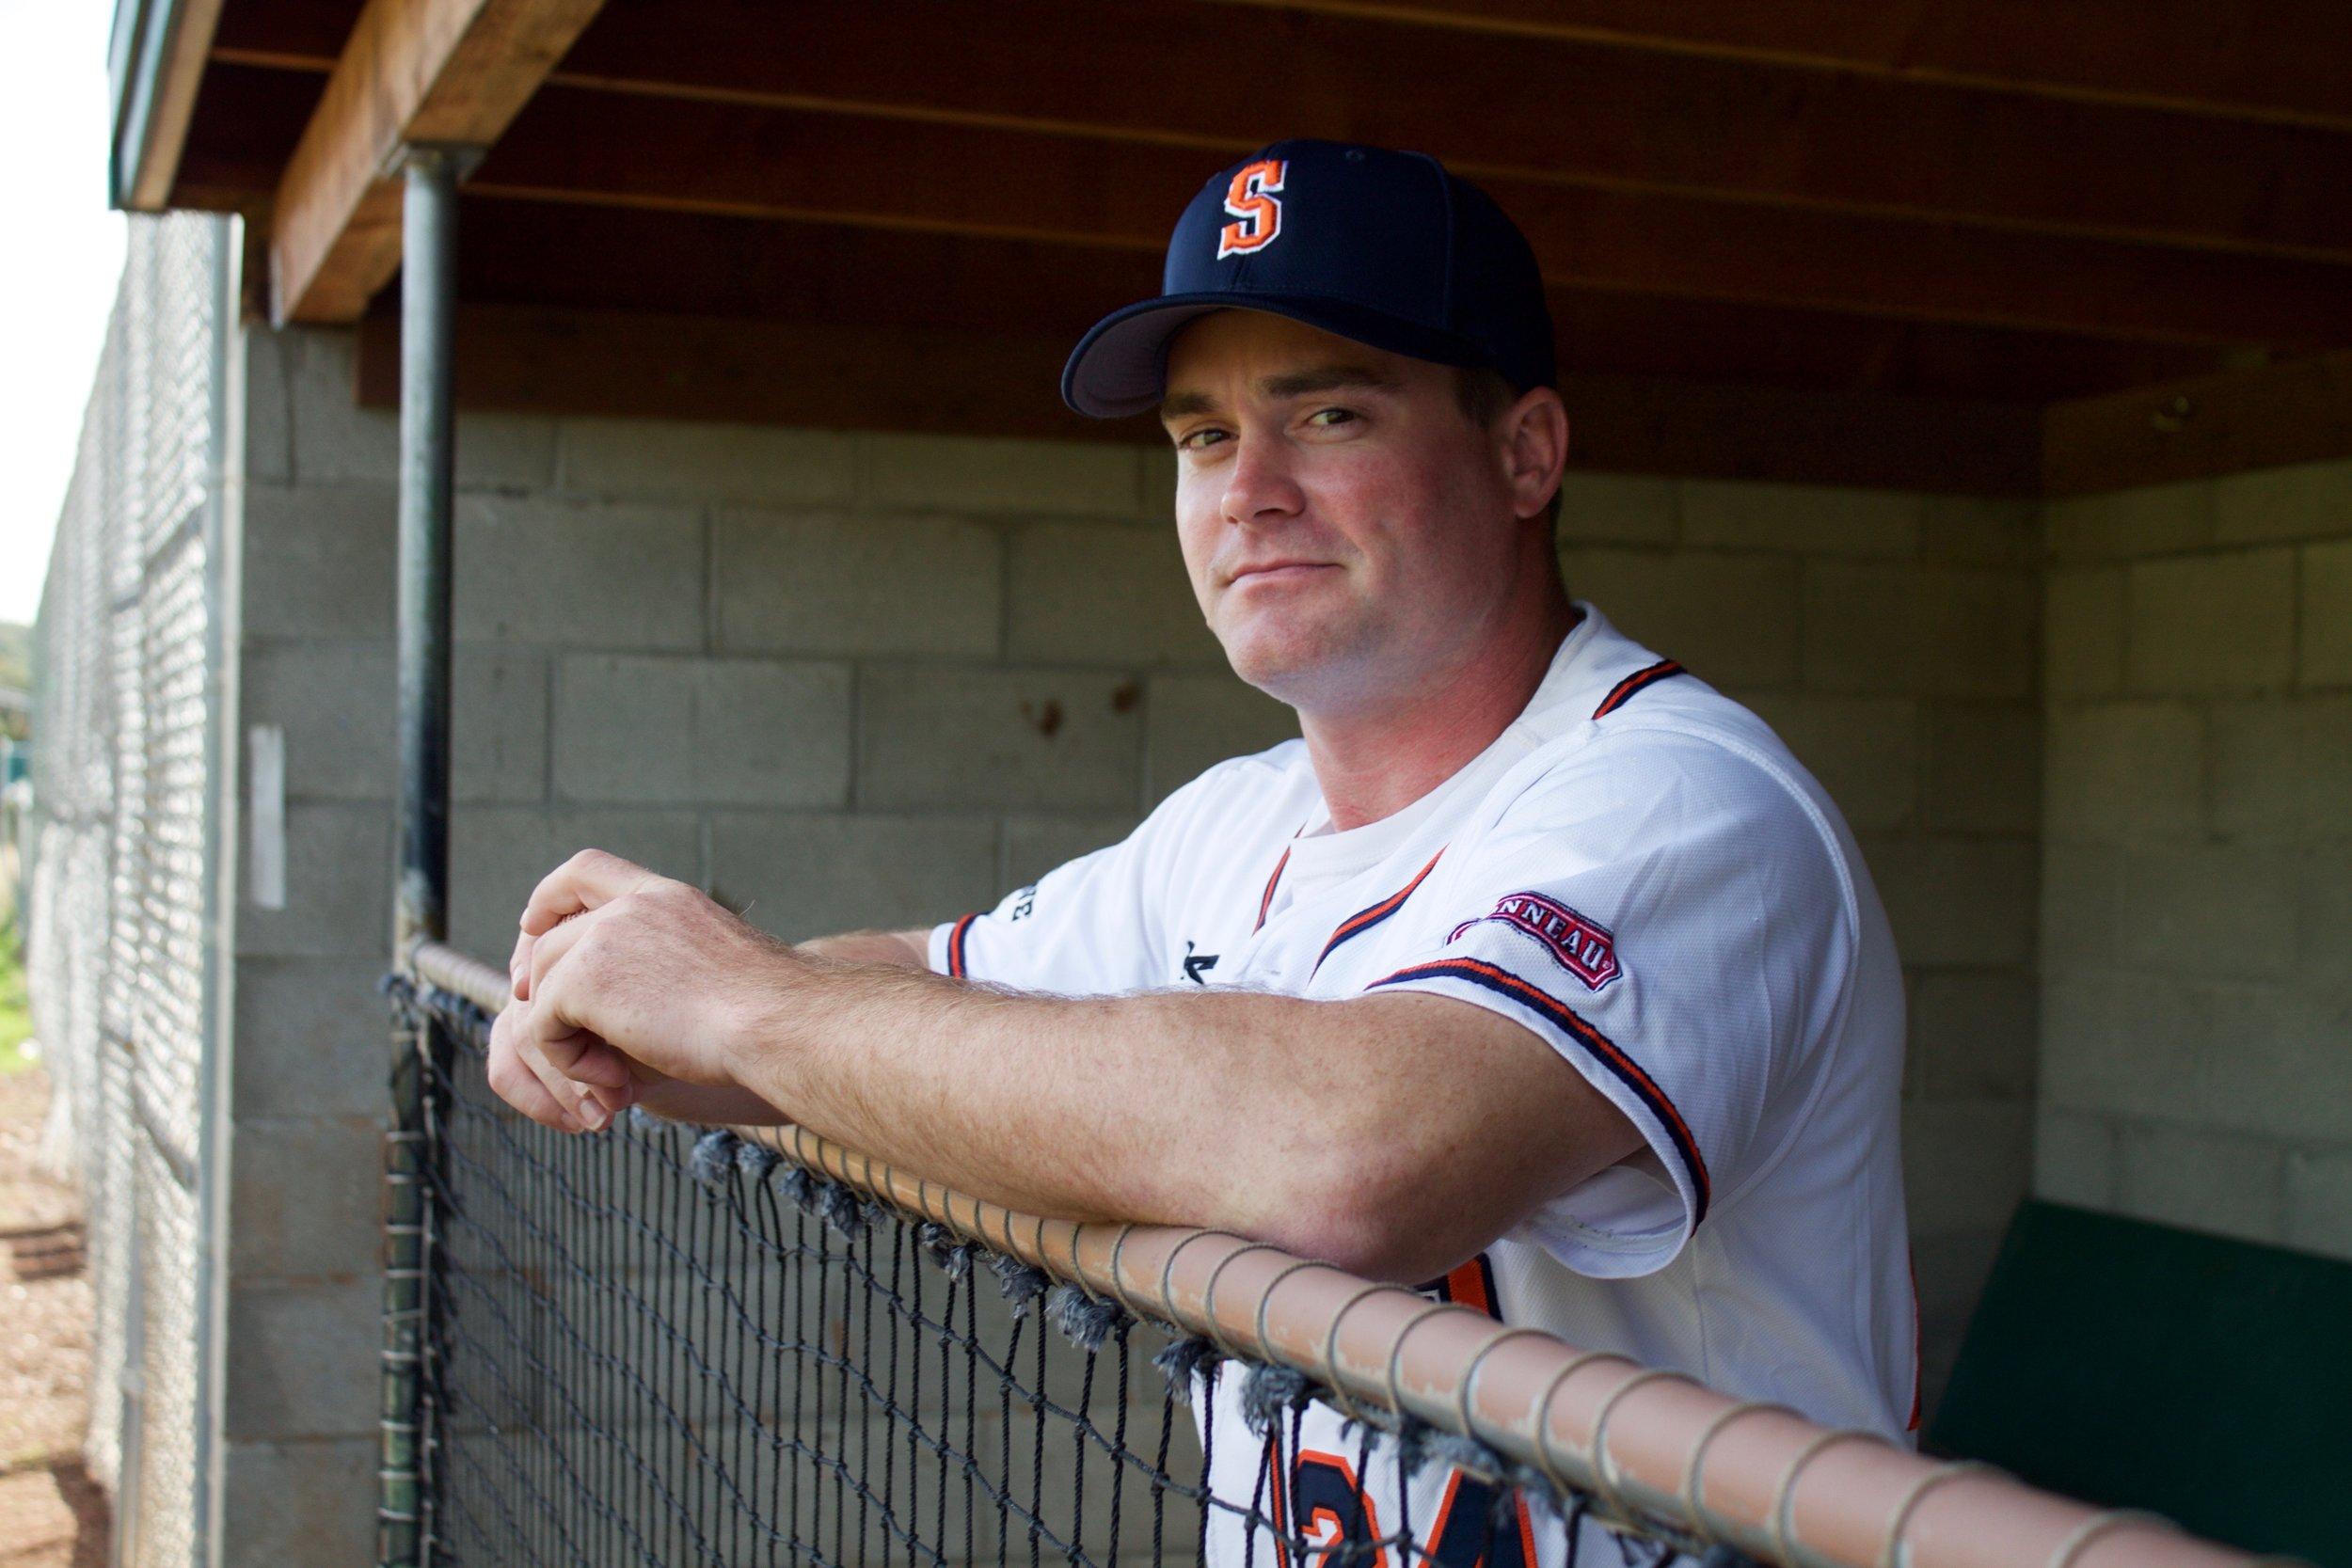 Zack Pace settles into the dugout at Arnold Field, where he'll spend 2018 managing the Sonoma Stompers.